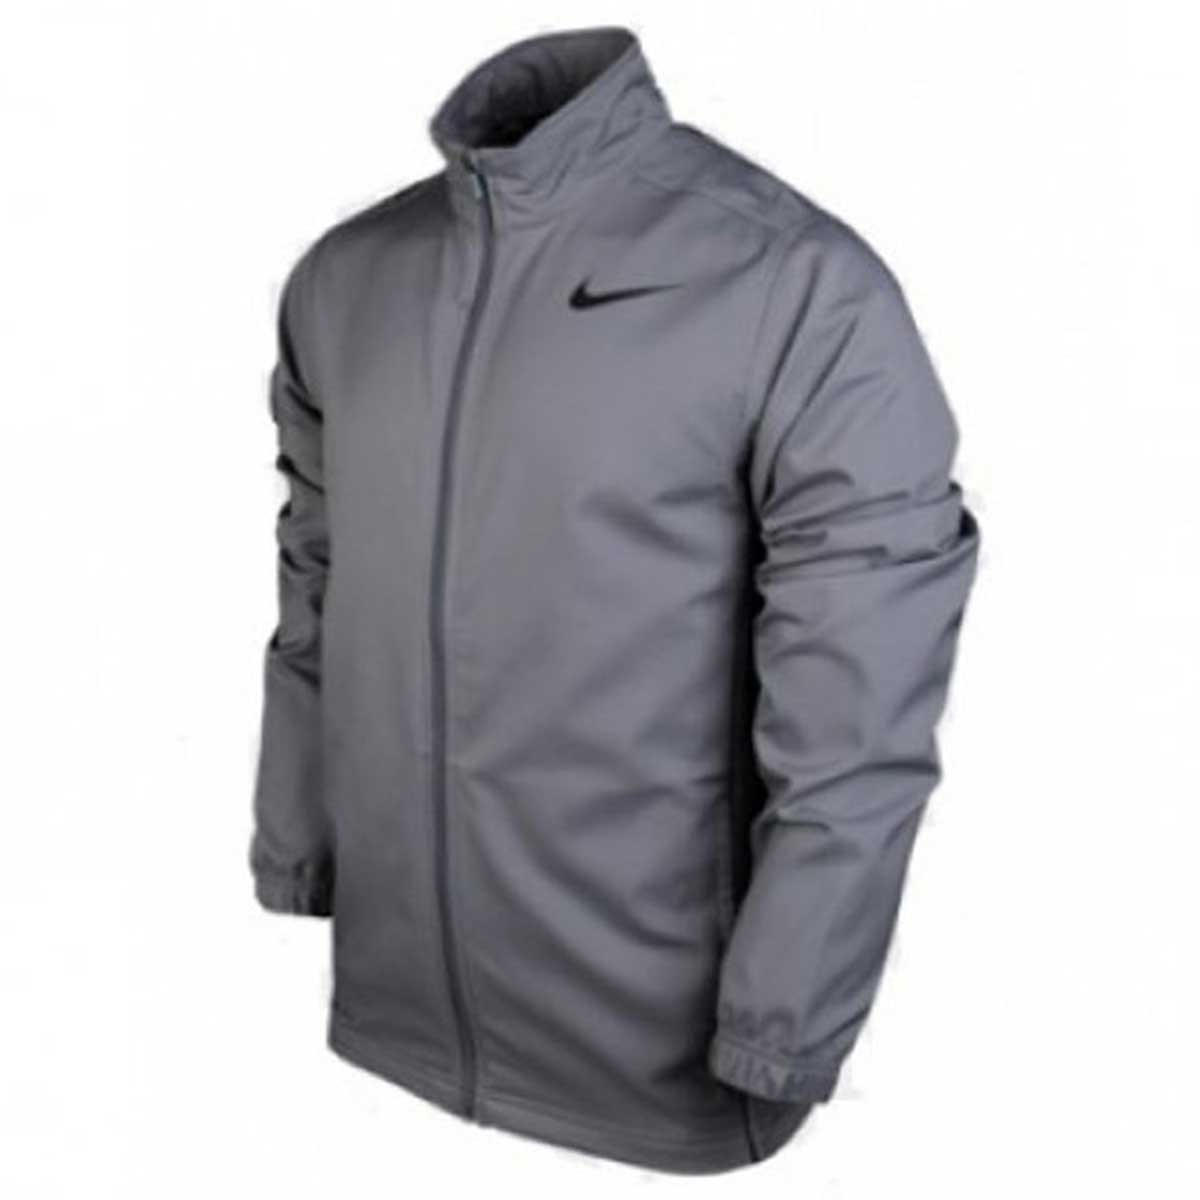 c1b72f85794a Buy Nike Team Woven II Jacket Online India